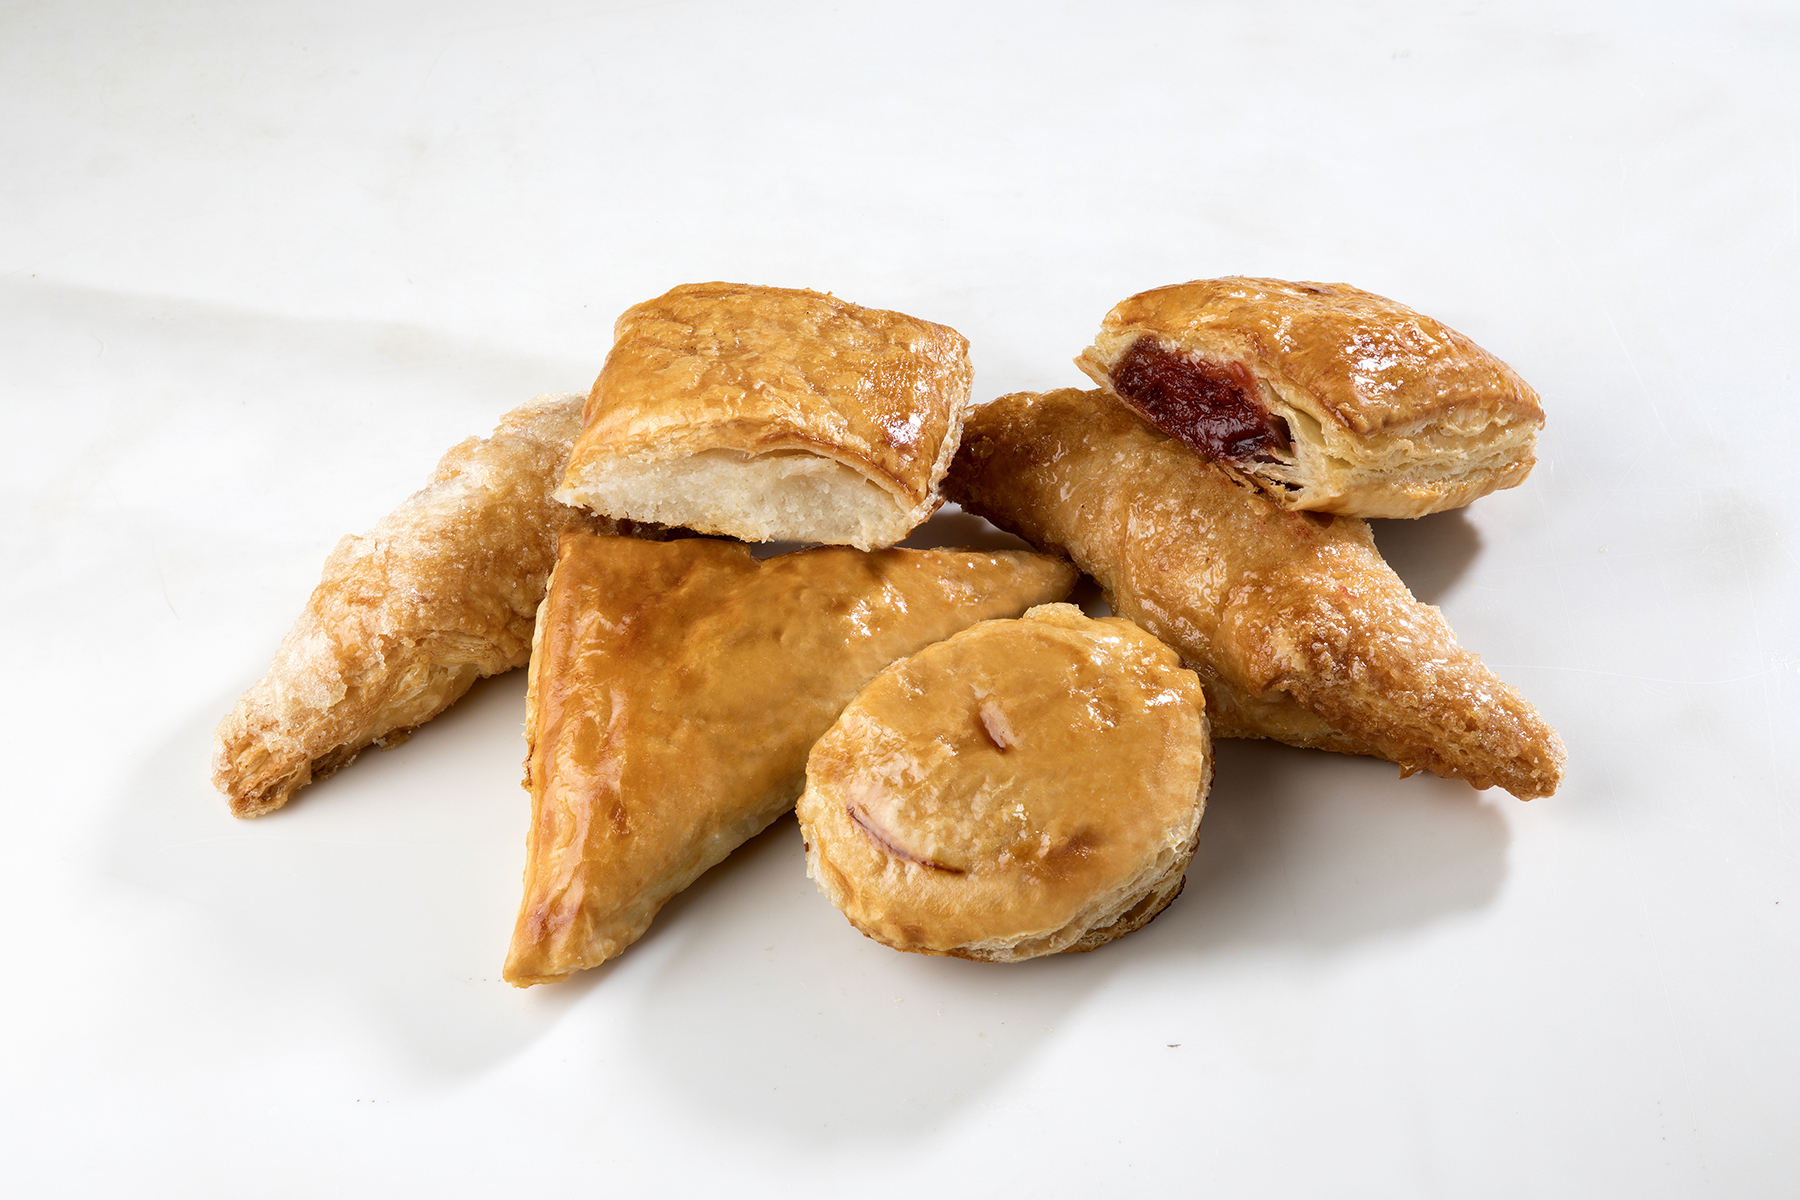 Versailles Bakery guava pastries